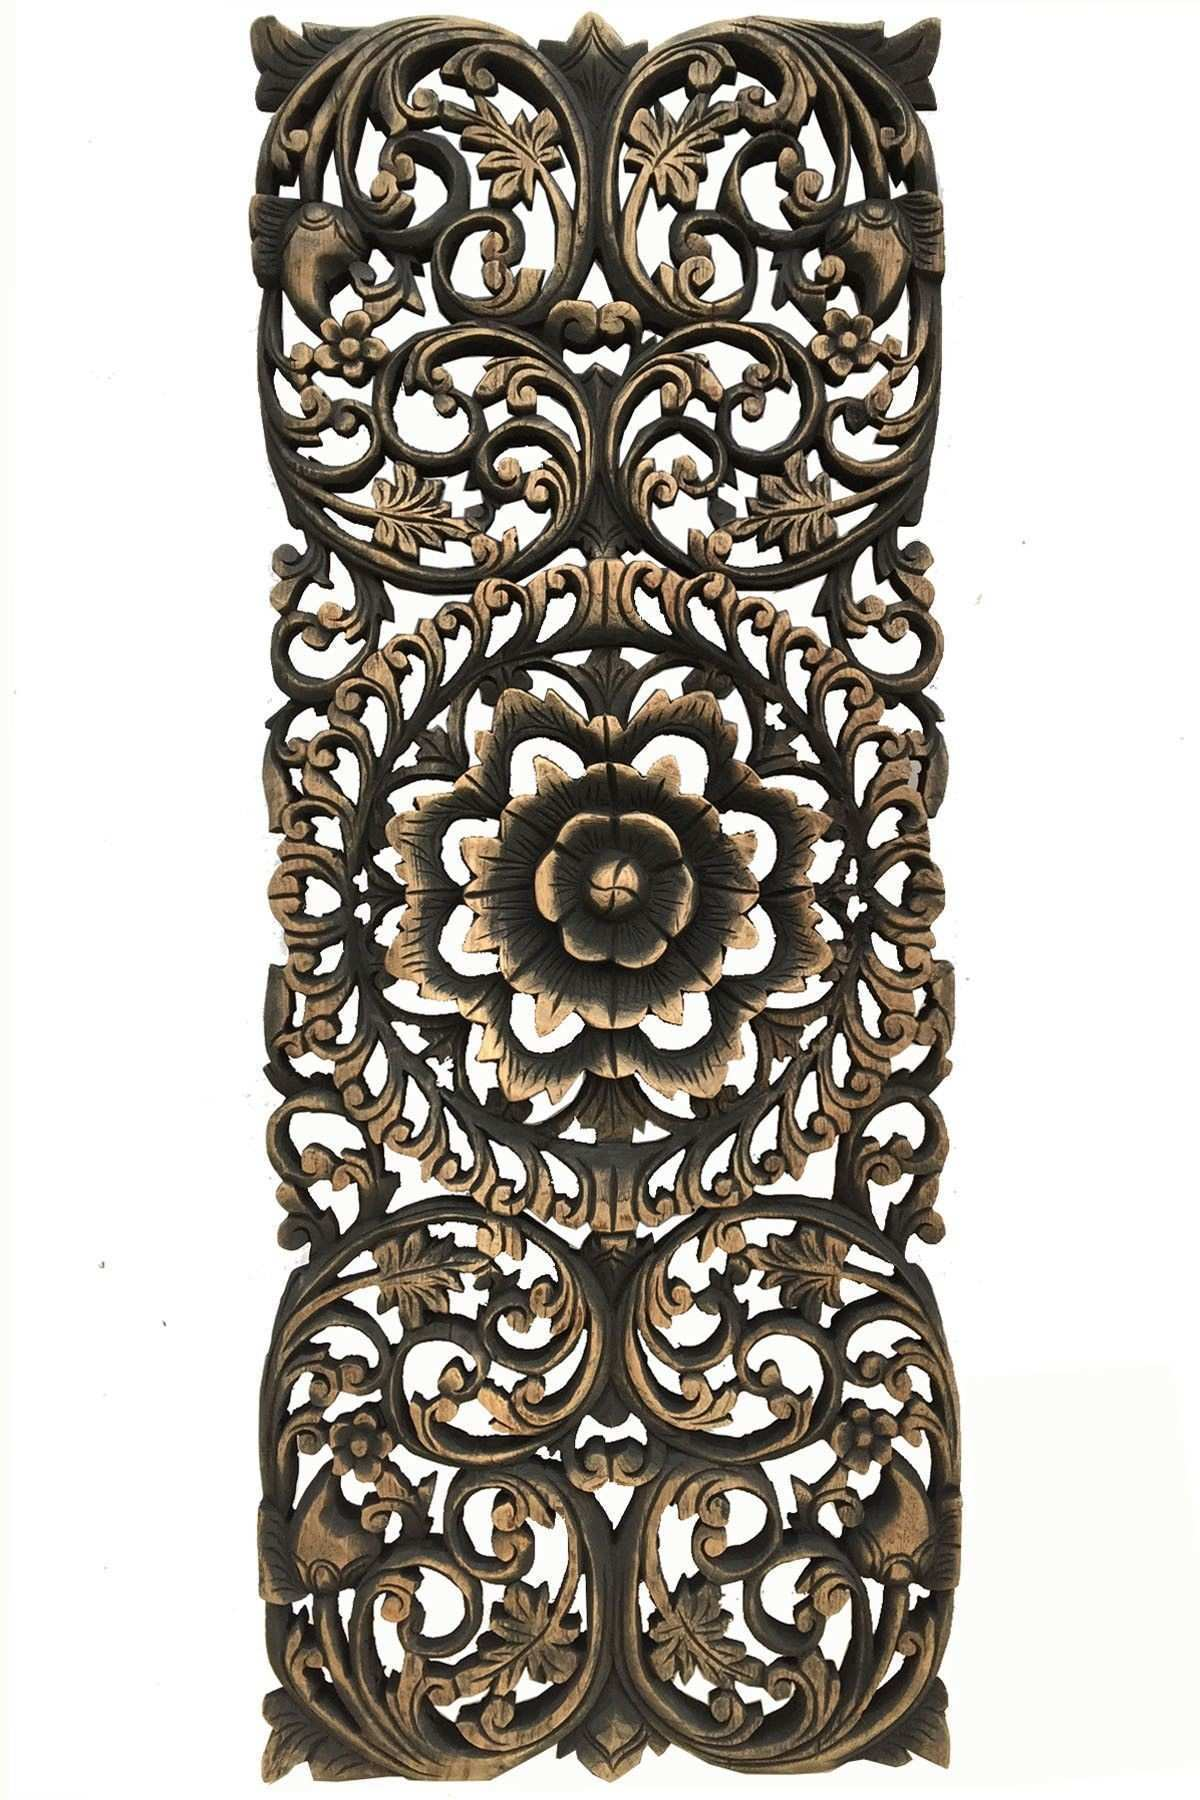 Floral Tropical Carved Wood Wall Panel Asian Wall Art Home Decor